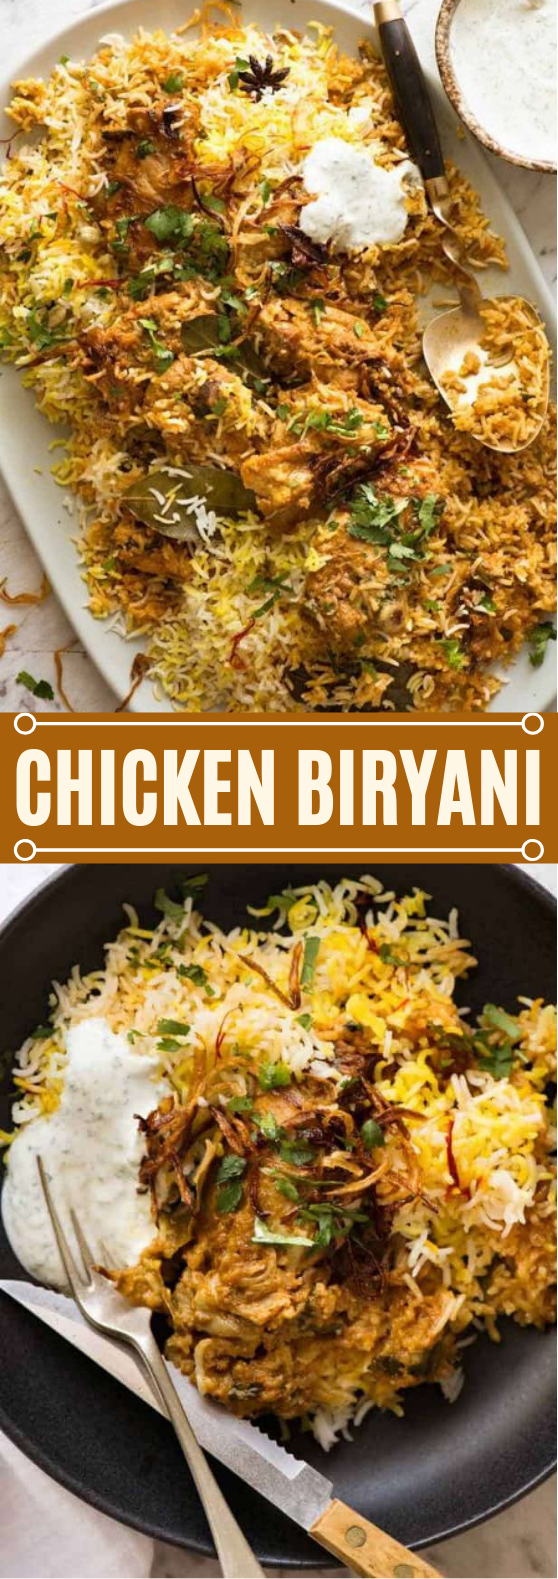 Chicken Biryani #dinner #recipes